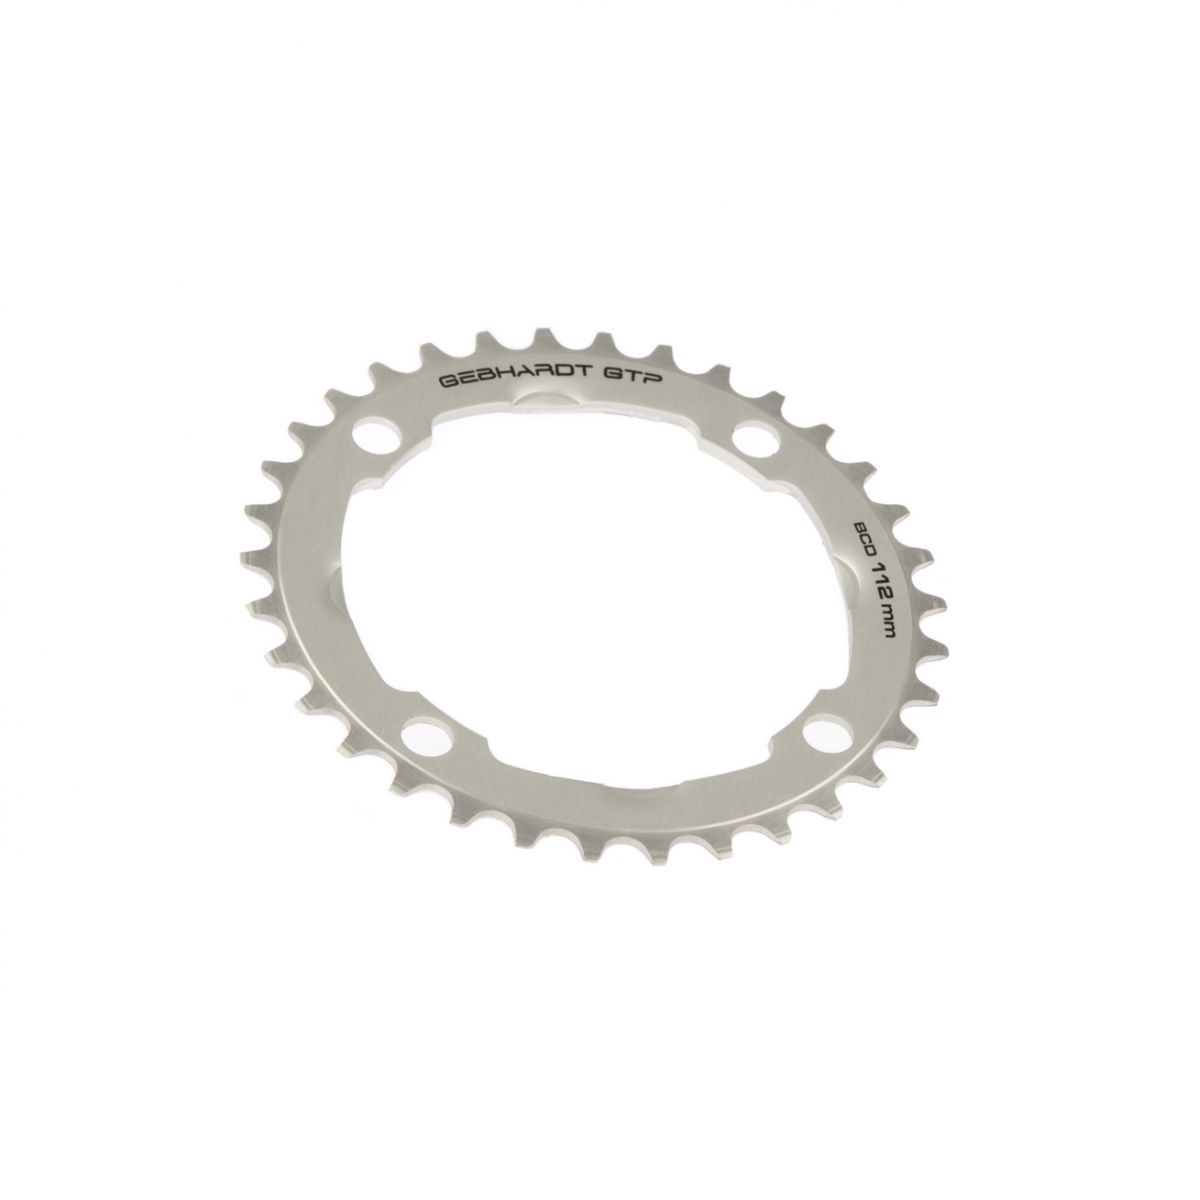 gebhardt chainring cnc ultra torque nexave bcd 112 mm 4hole 34t silver